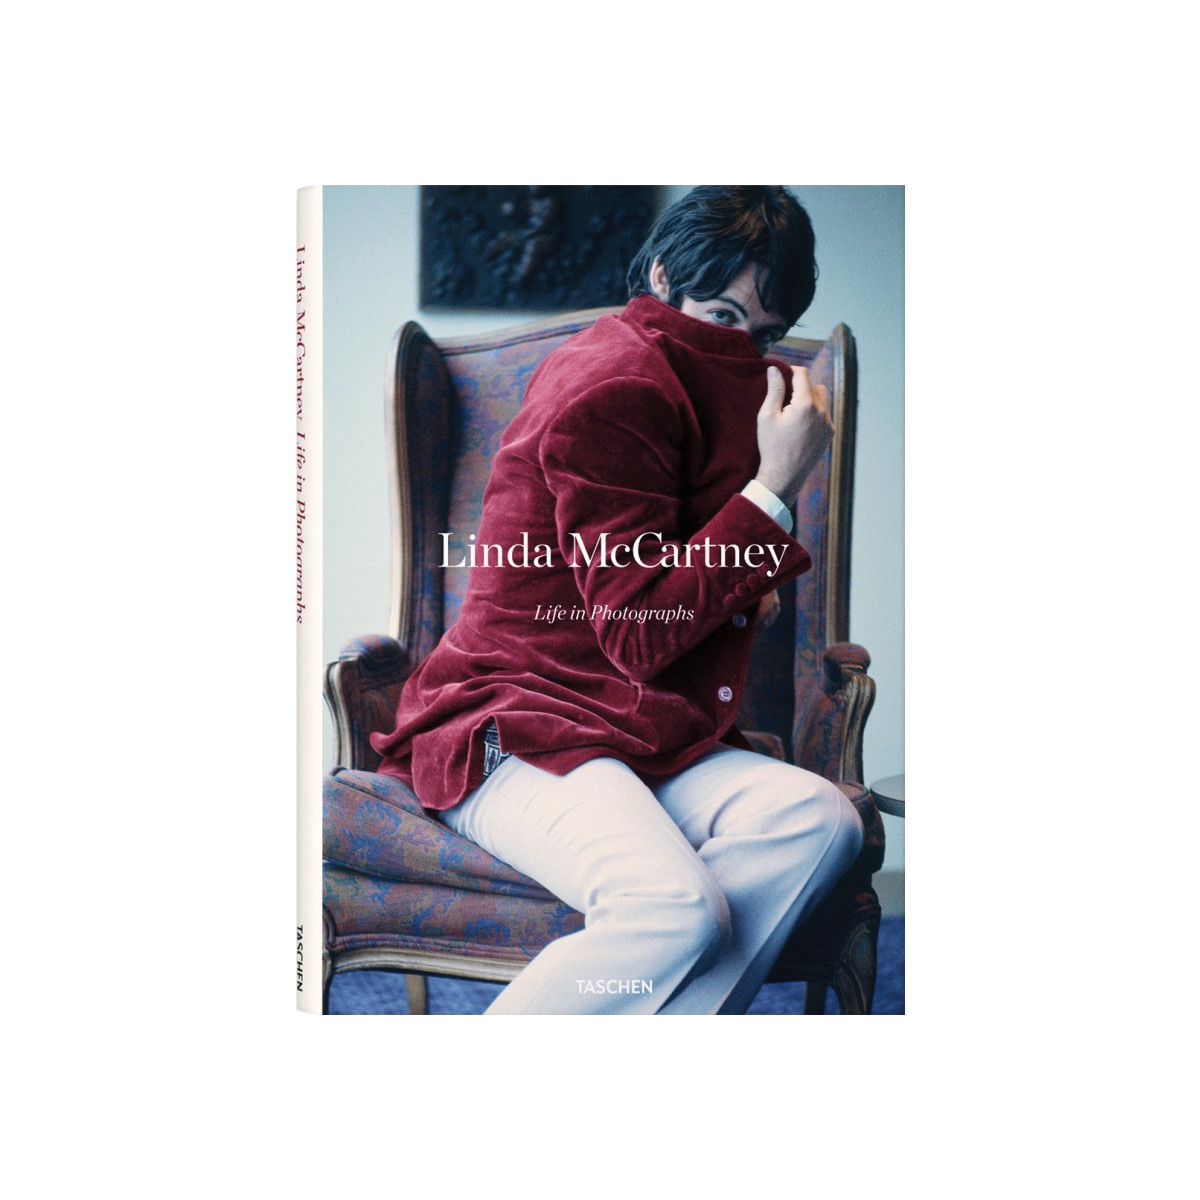 Livro Linda McCartney Life in Photographs